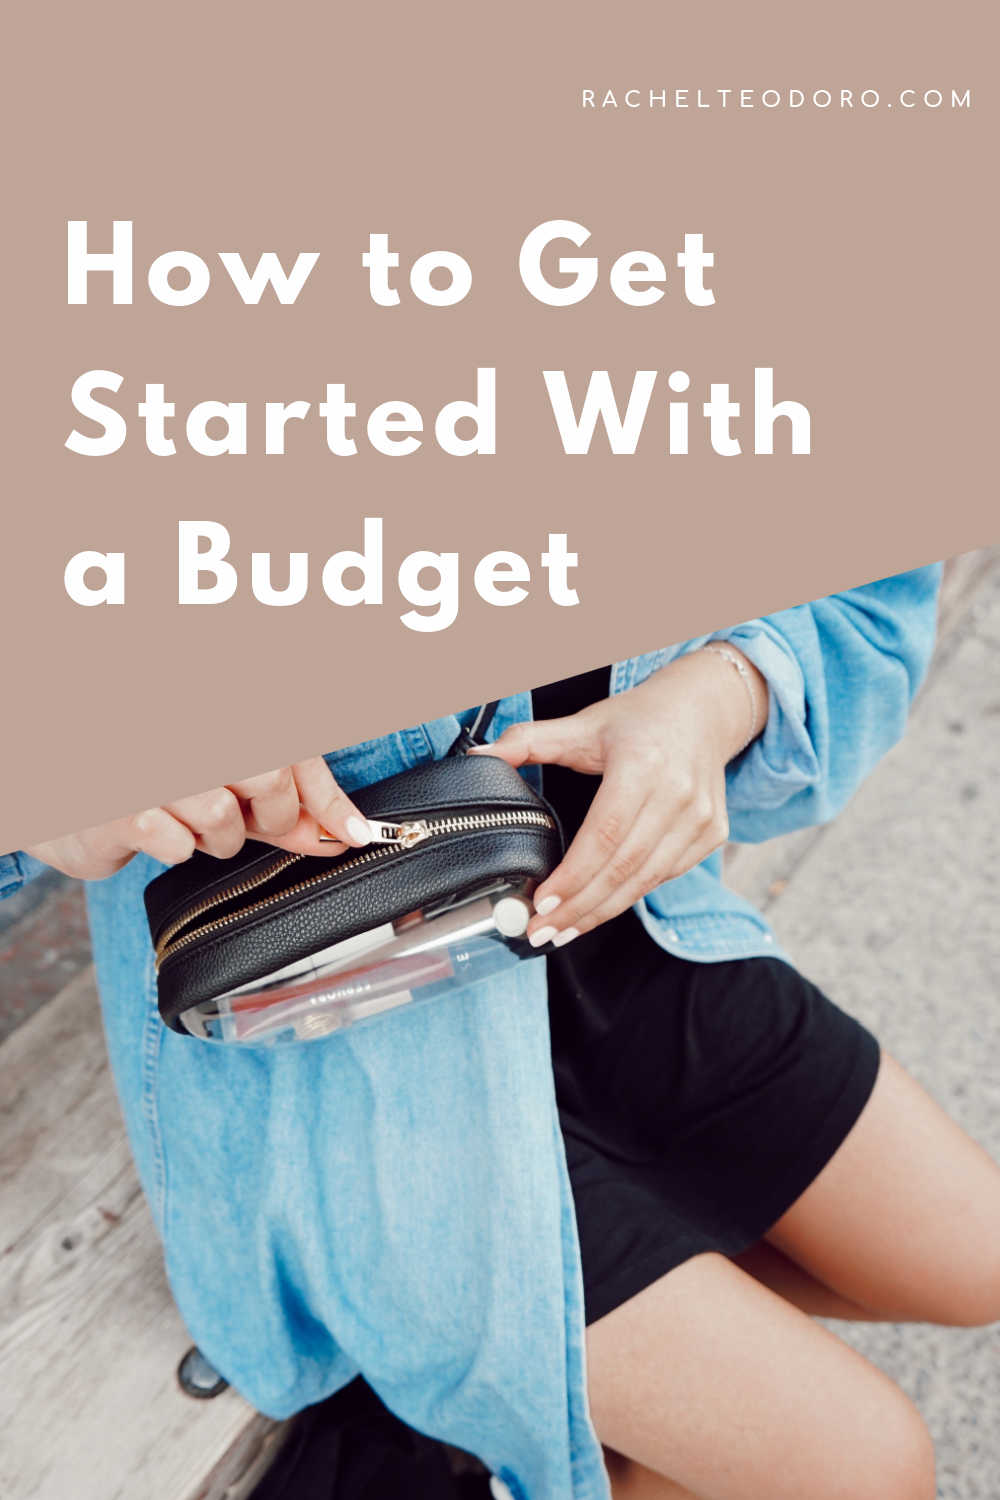 GETTING STARTED WITH A BUDGET